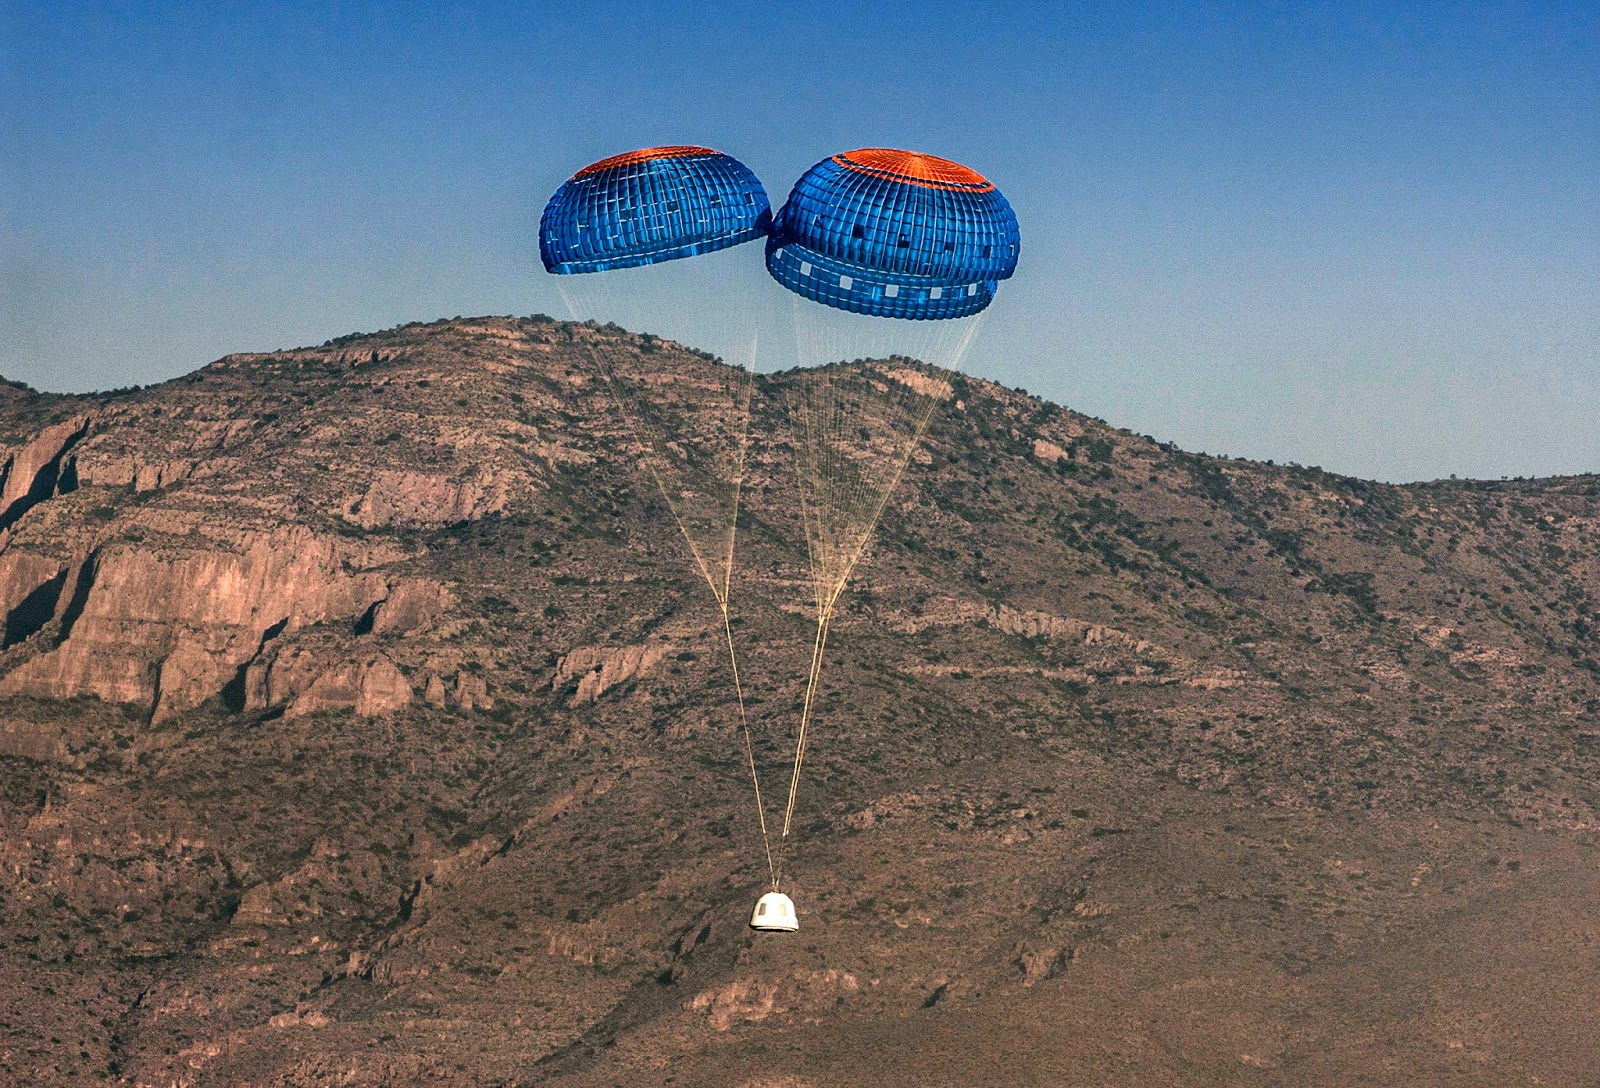 After a clean separation from the propulsion module, the New Shepard crew capsule descends to a gentle landing in the west Texas desert. Credit: Blue Origin